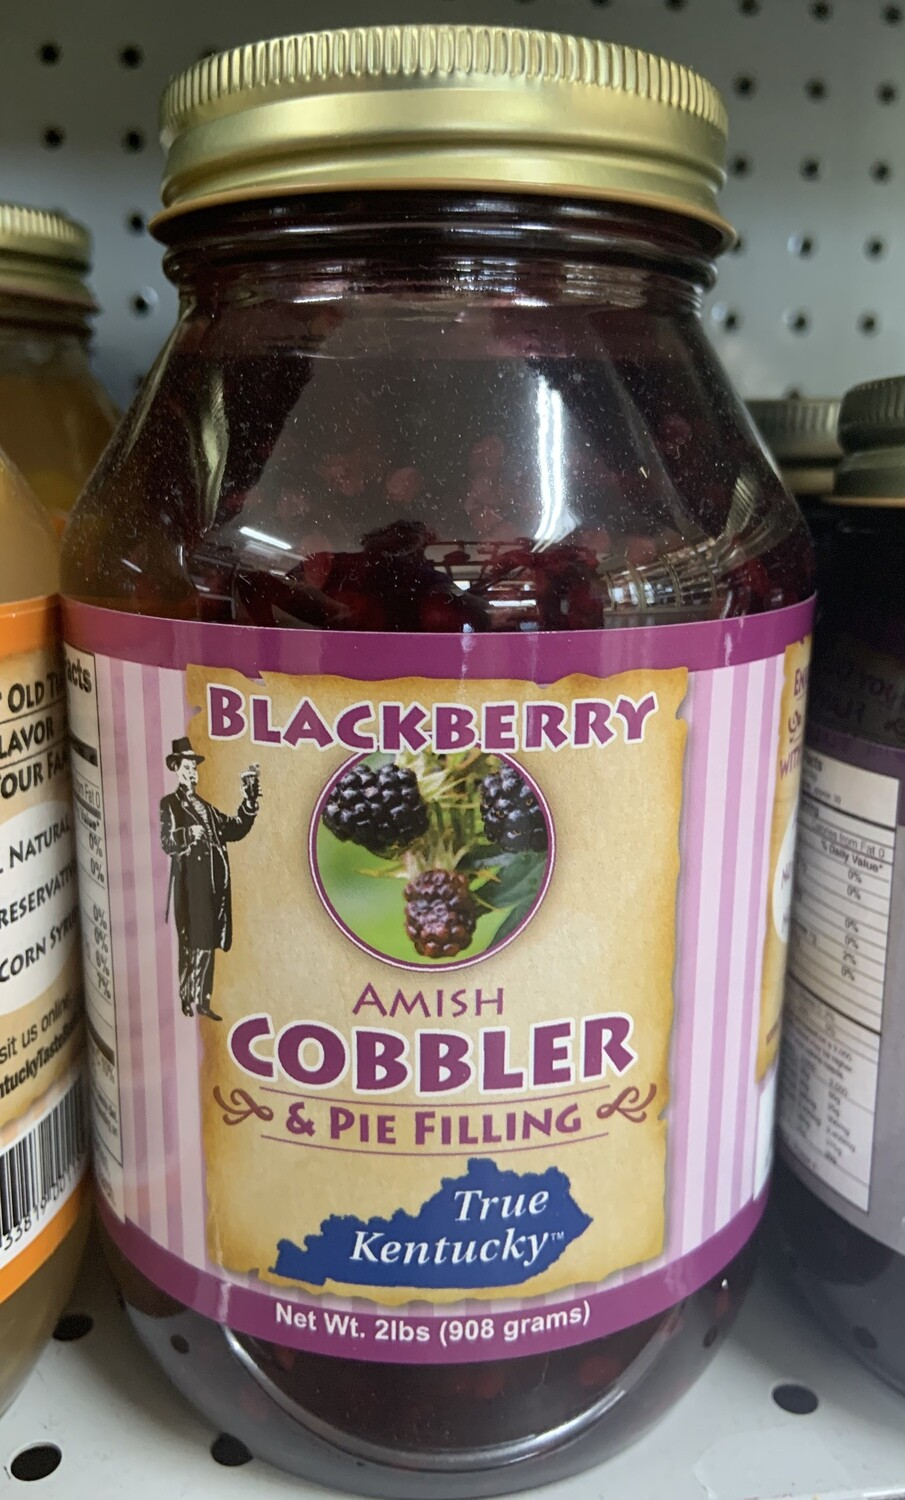 True Ky Blackberry Cobbler & Pie Filling 26oz